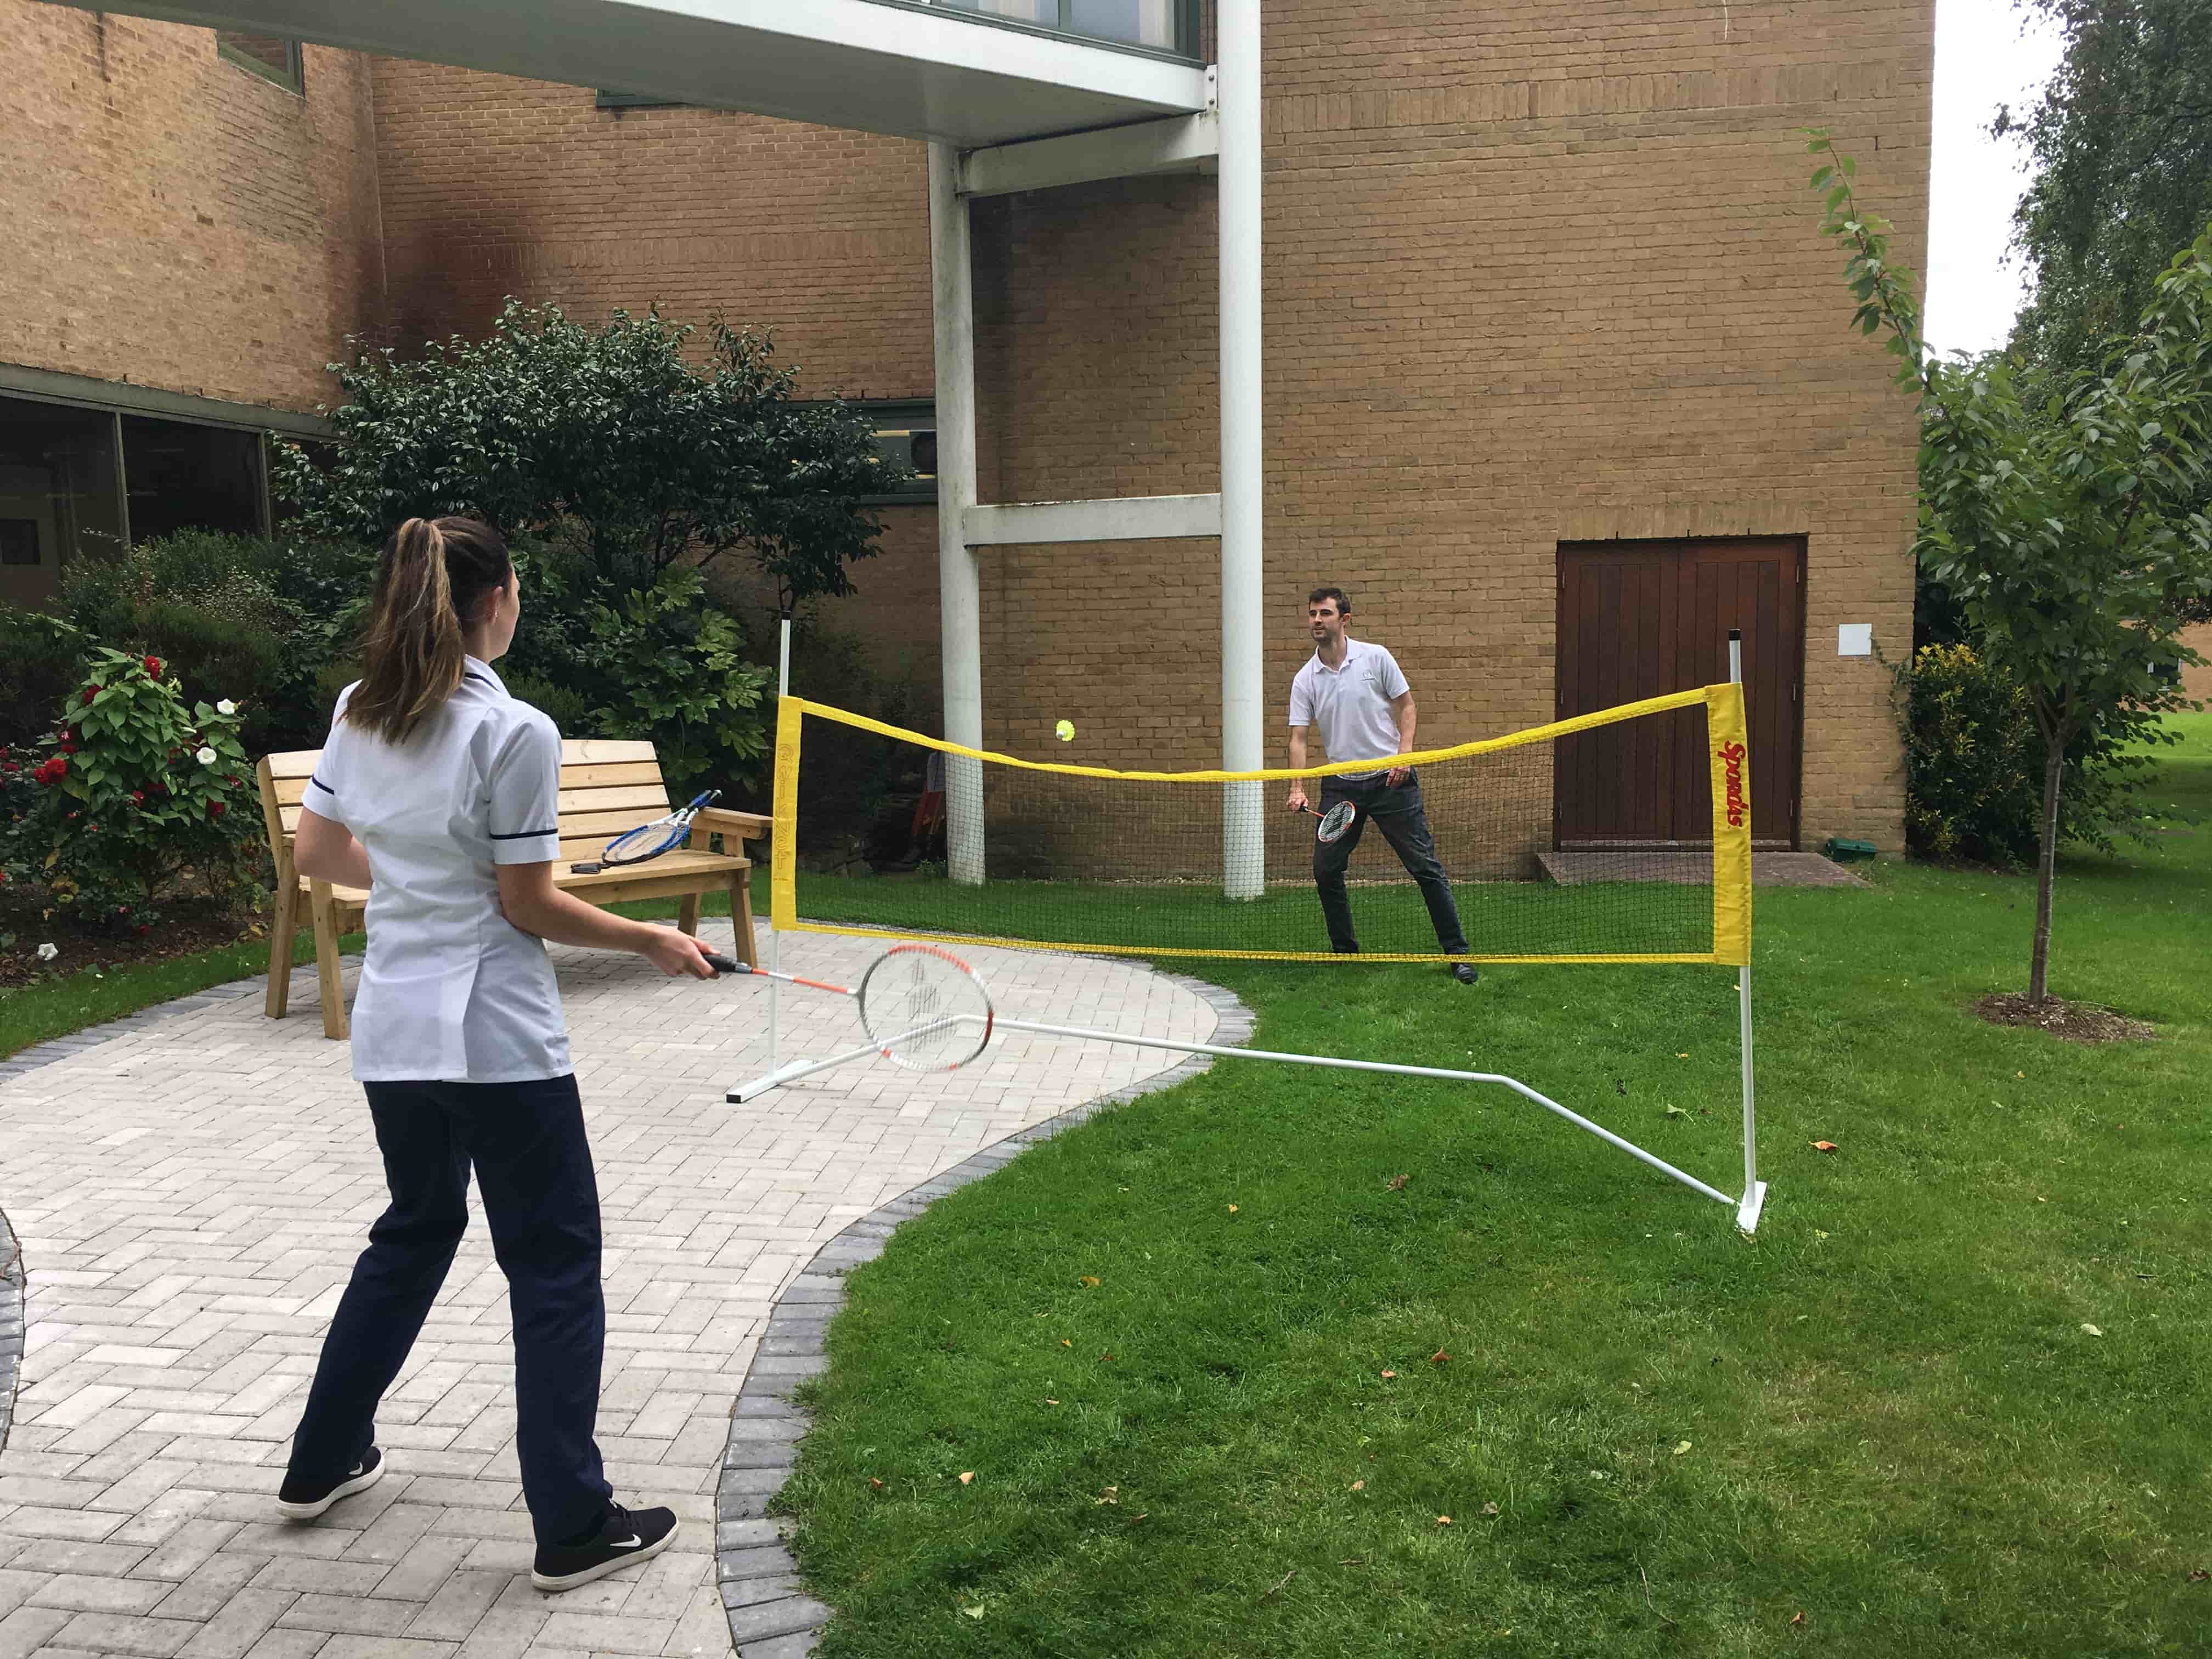 Staff playing badminton in hospital grounds